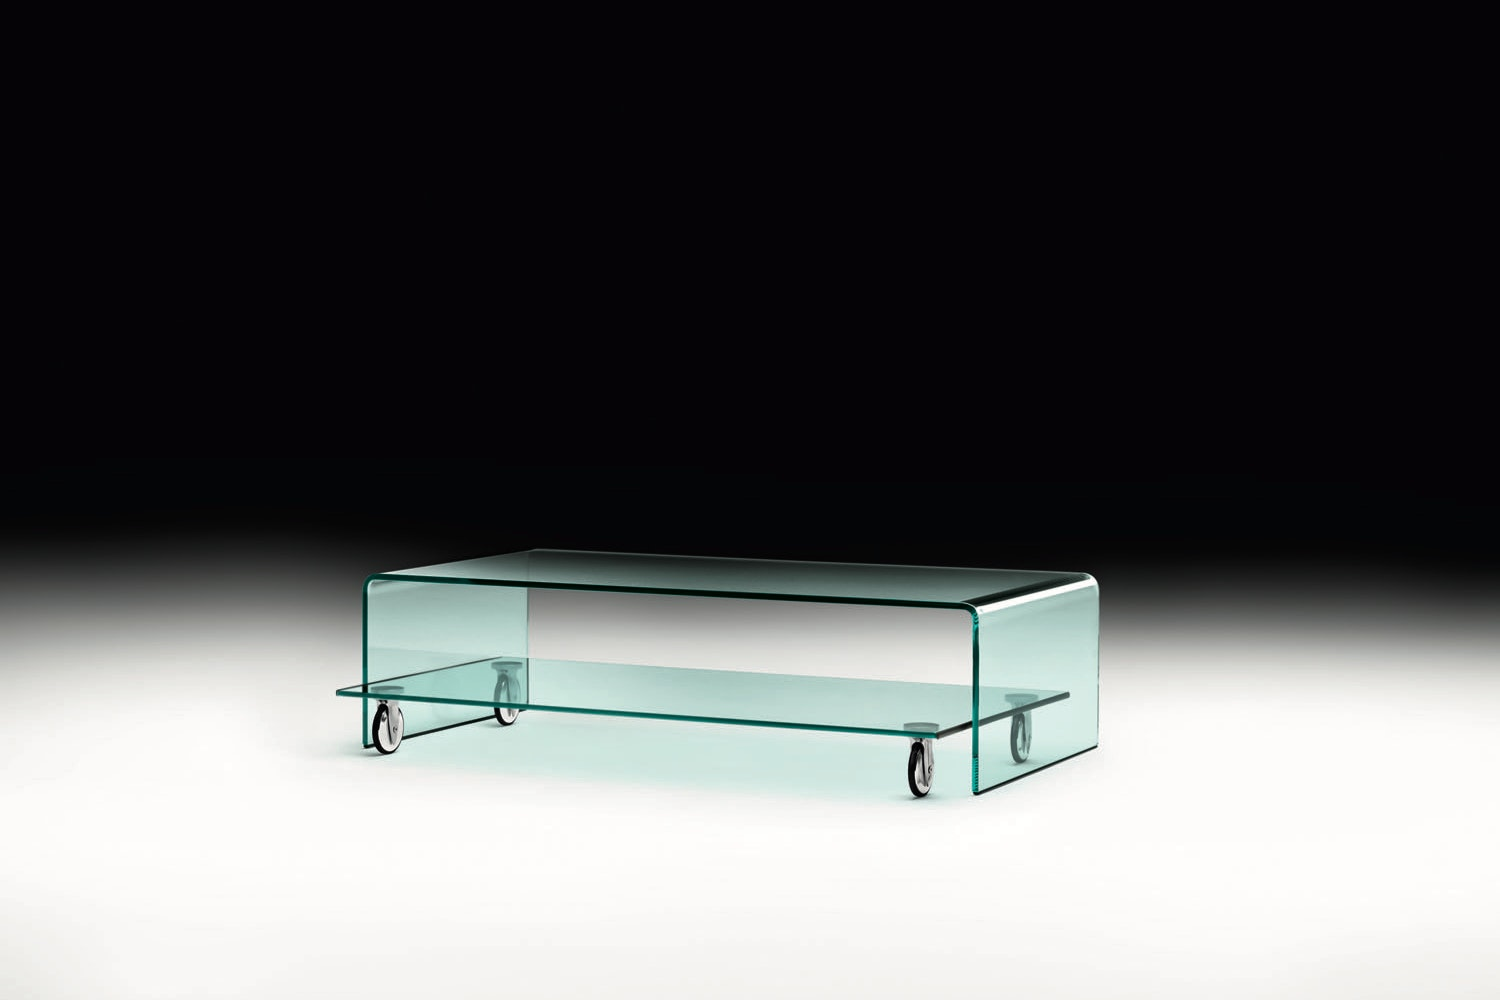 Rialto Moving Coffee Table by CRS Fiam for Fiam Italia